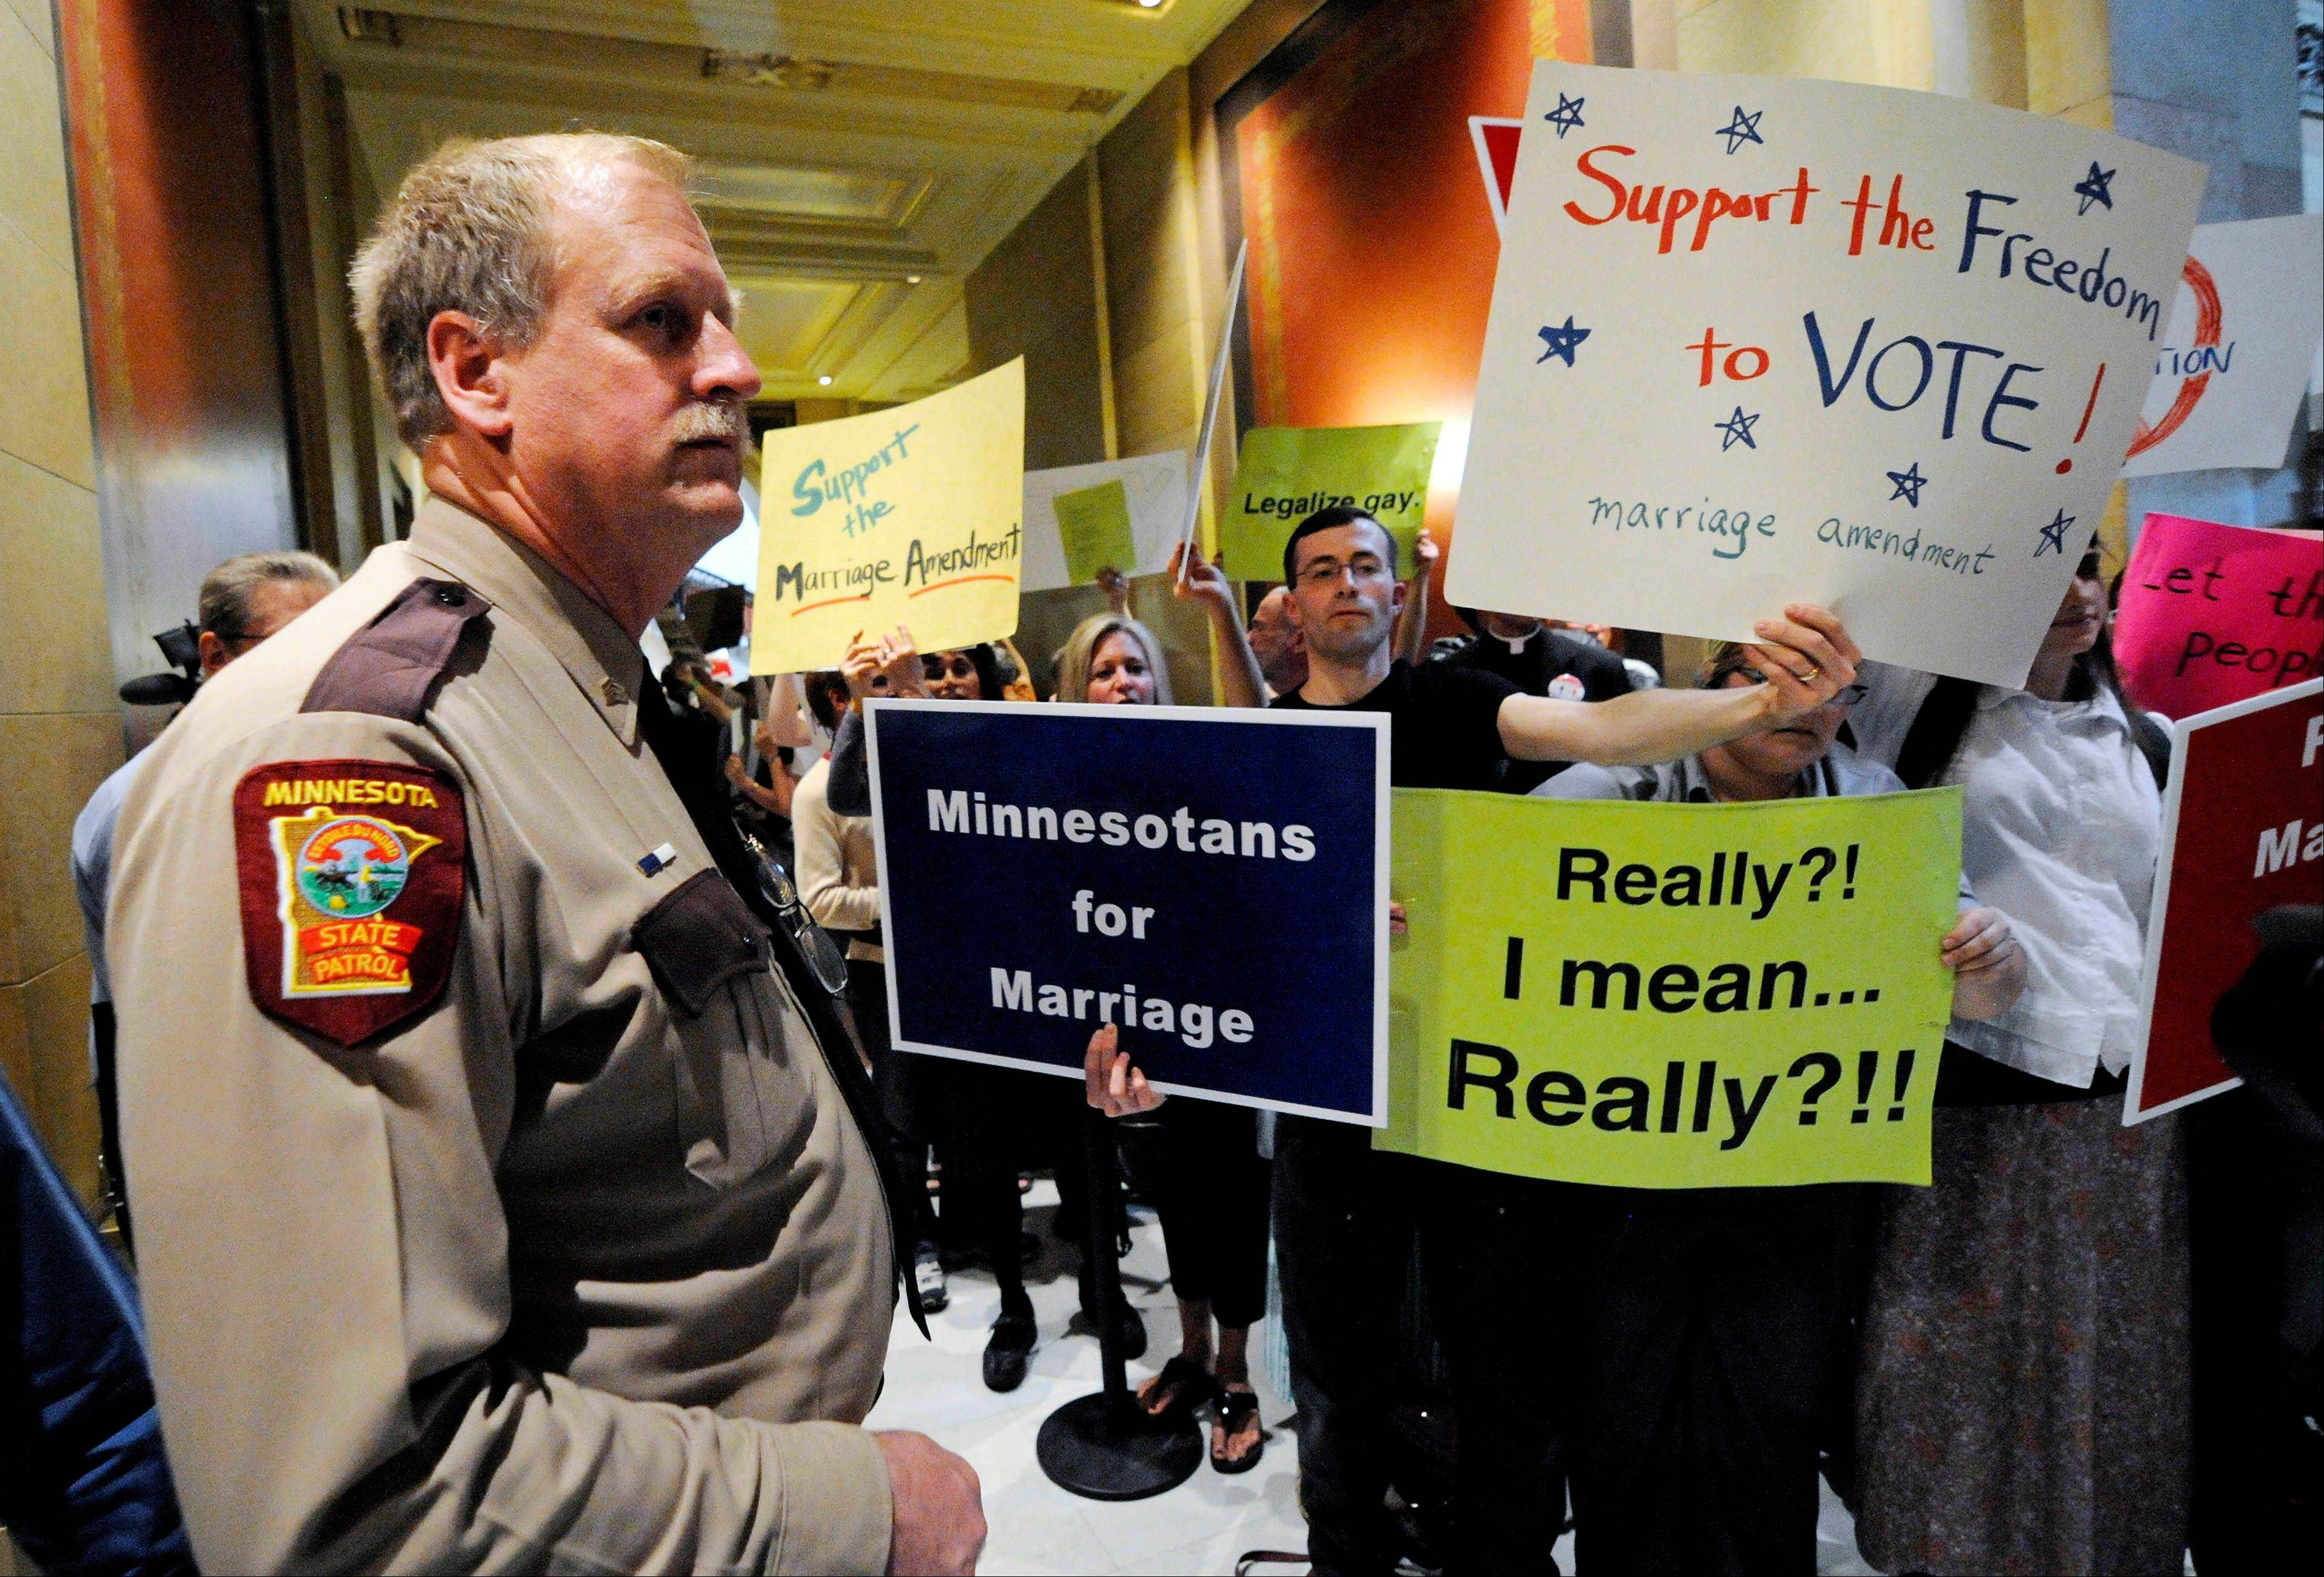 A state trooper stands by as demonstrators on both sides of the gay marriage issue gather outside the Minnesota House in St. Paul, Minn. Poll after poll shows public support for same-sex marriage steadily increasing, to the point where it's now a majority viewpoint. Yet in all 32 states where gay marriage has been on the ballot, voters have rejected it. It's possible the streak could end in November 2012, when Maine, Maryland, Minnesota and Washington state are likely to have closely contested gay marriage measures on their ballots. For now, however, there remains a gap between the national polling results and the way states have voted.